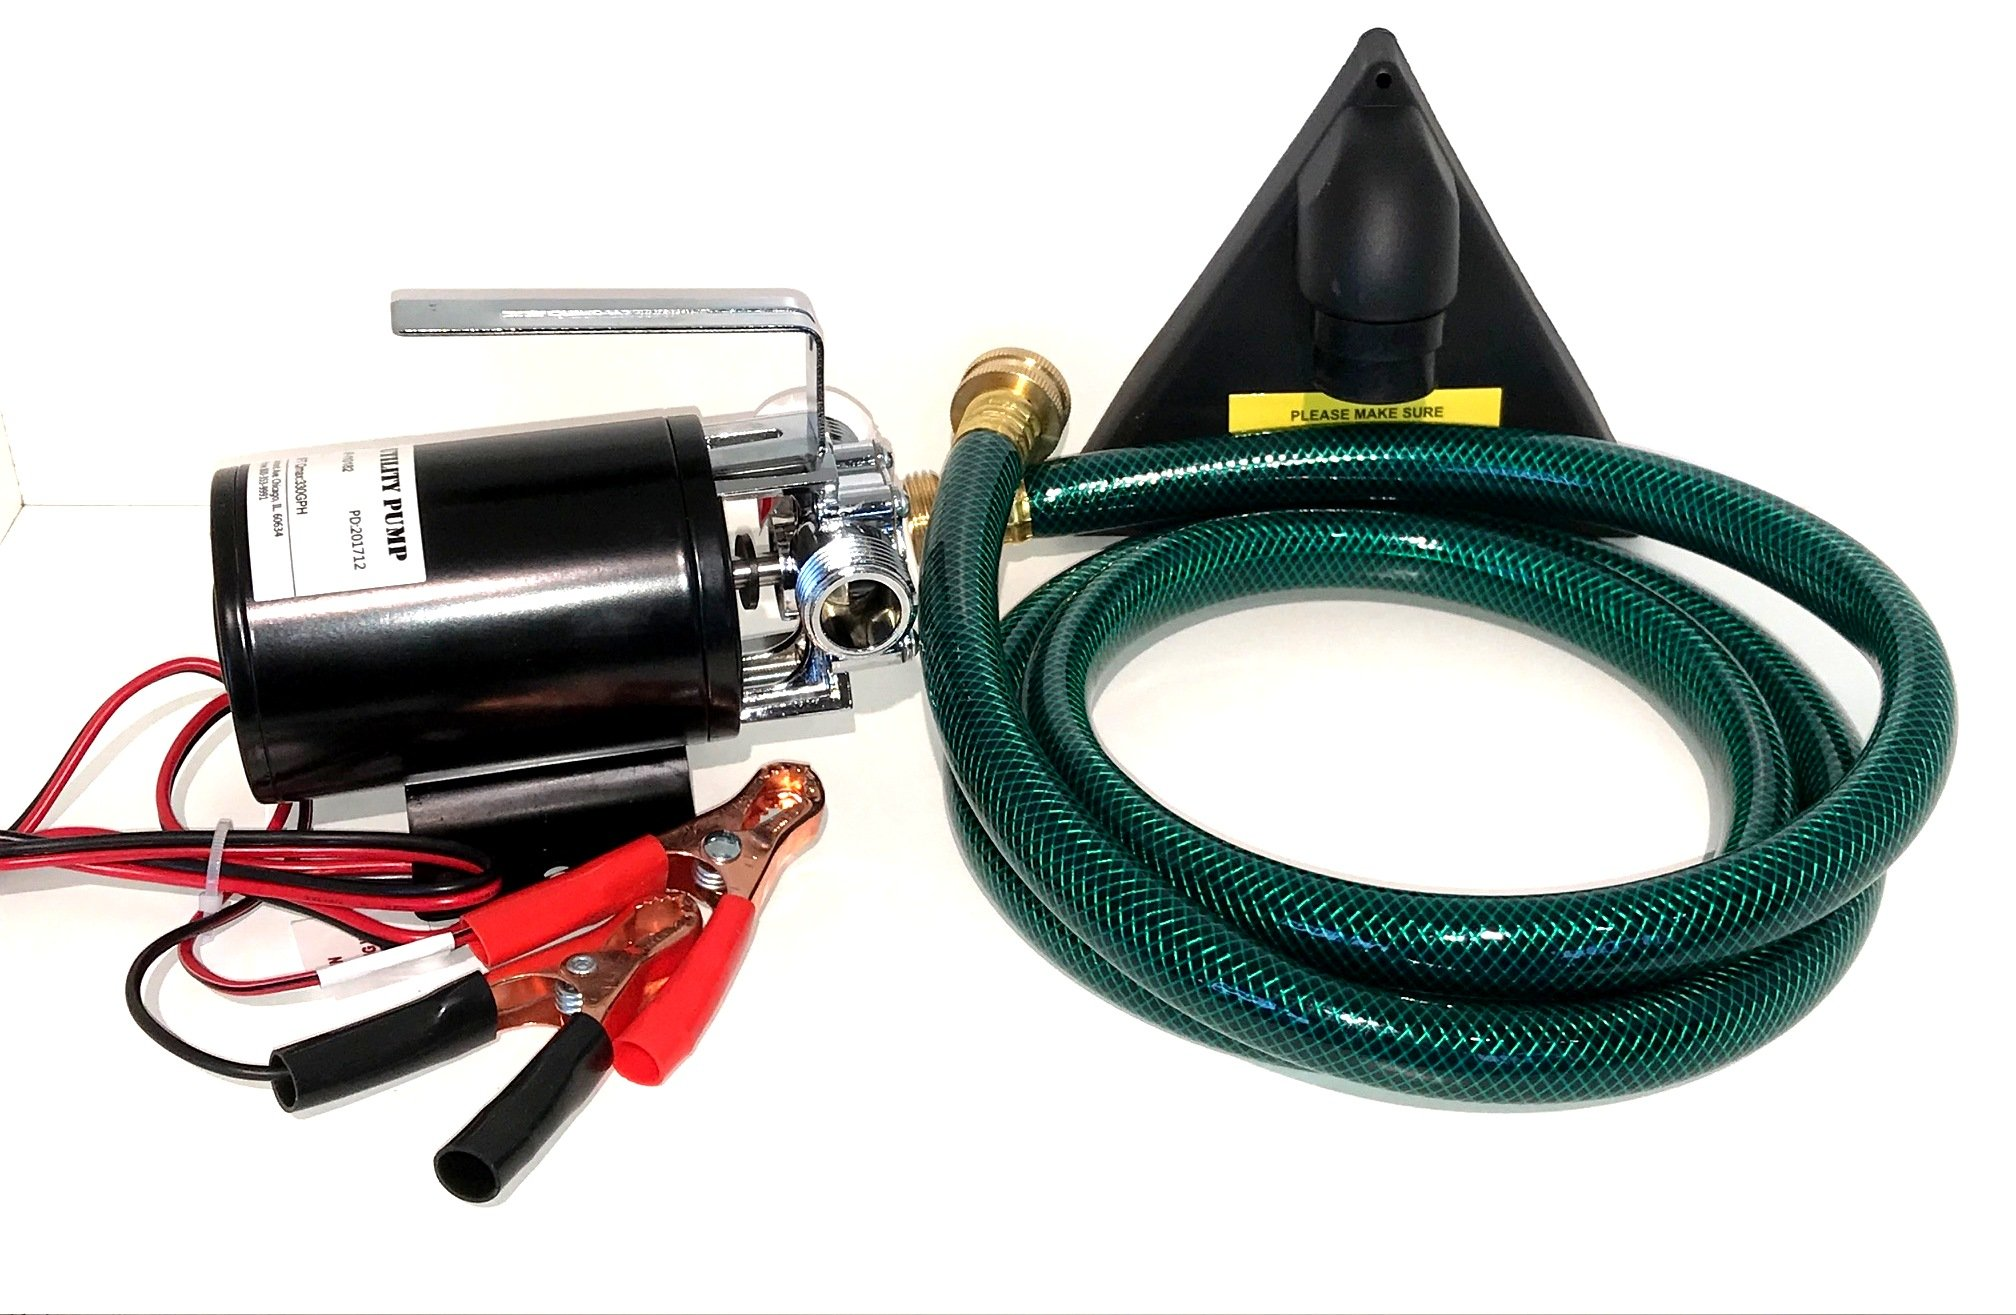 12-volt DC 1/10th HP 330 GPH Battery Powered Portable Mini Water Transfer Utility Pump with Metal Connectors for Standard 3/4'' Garden Hose Great for removing water from Boats Water Yard or Garden by Maresh Products